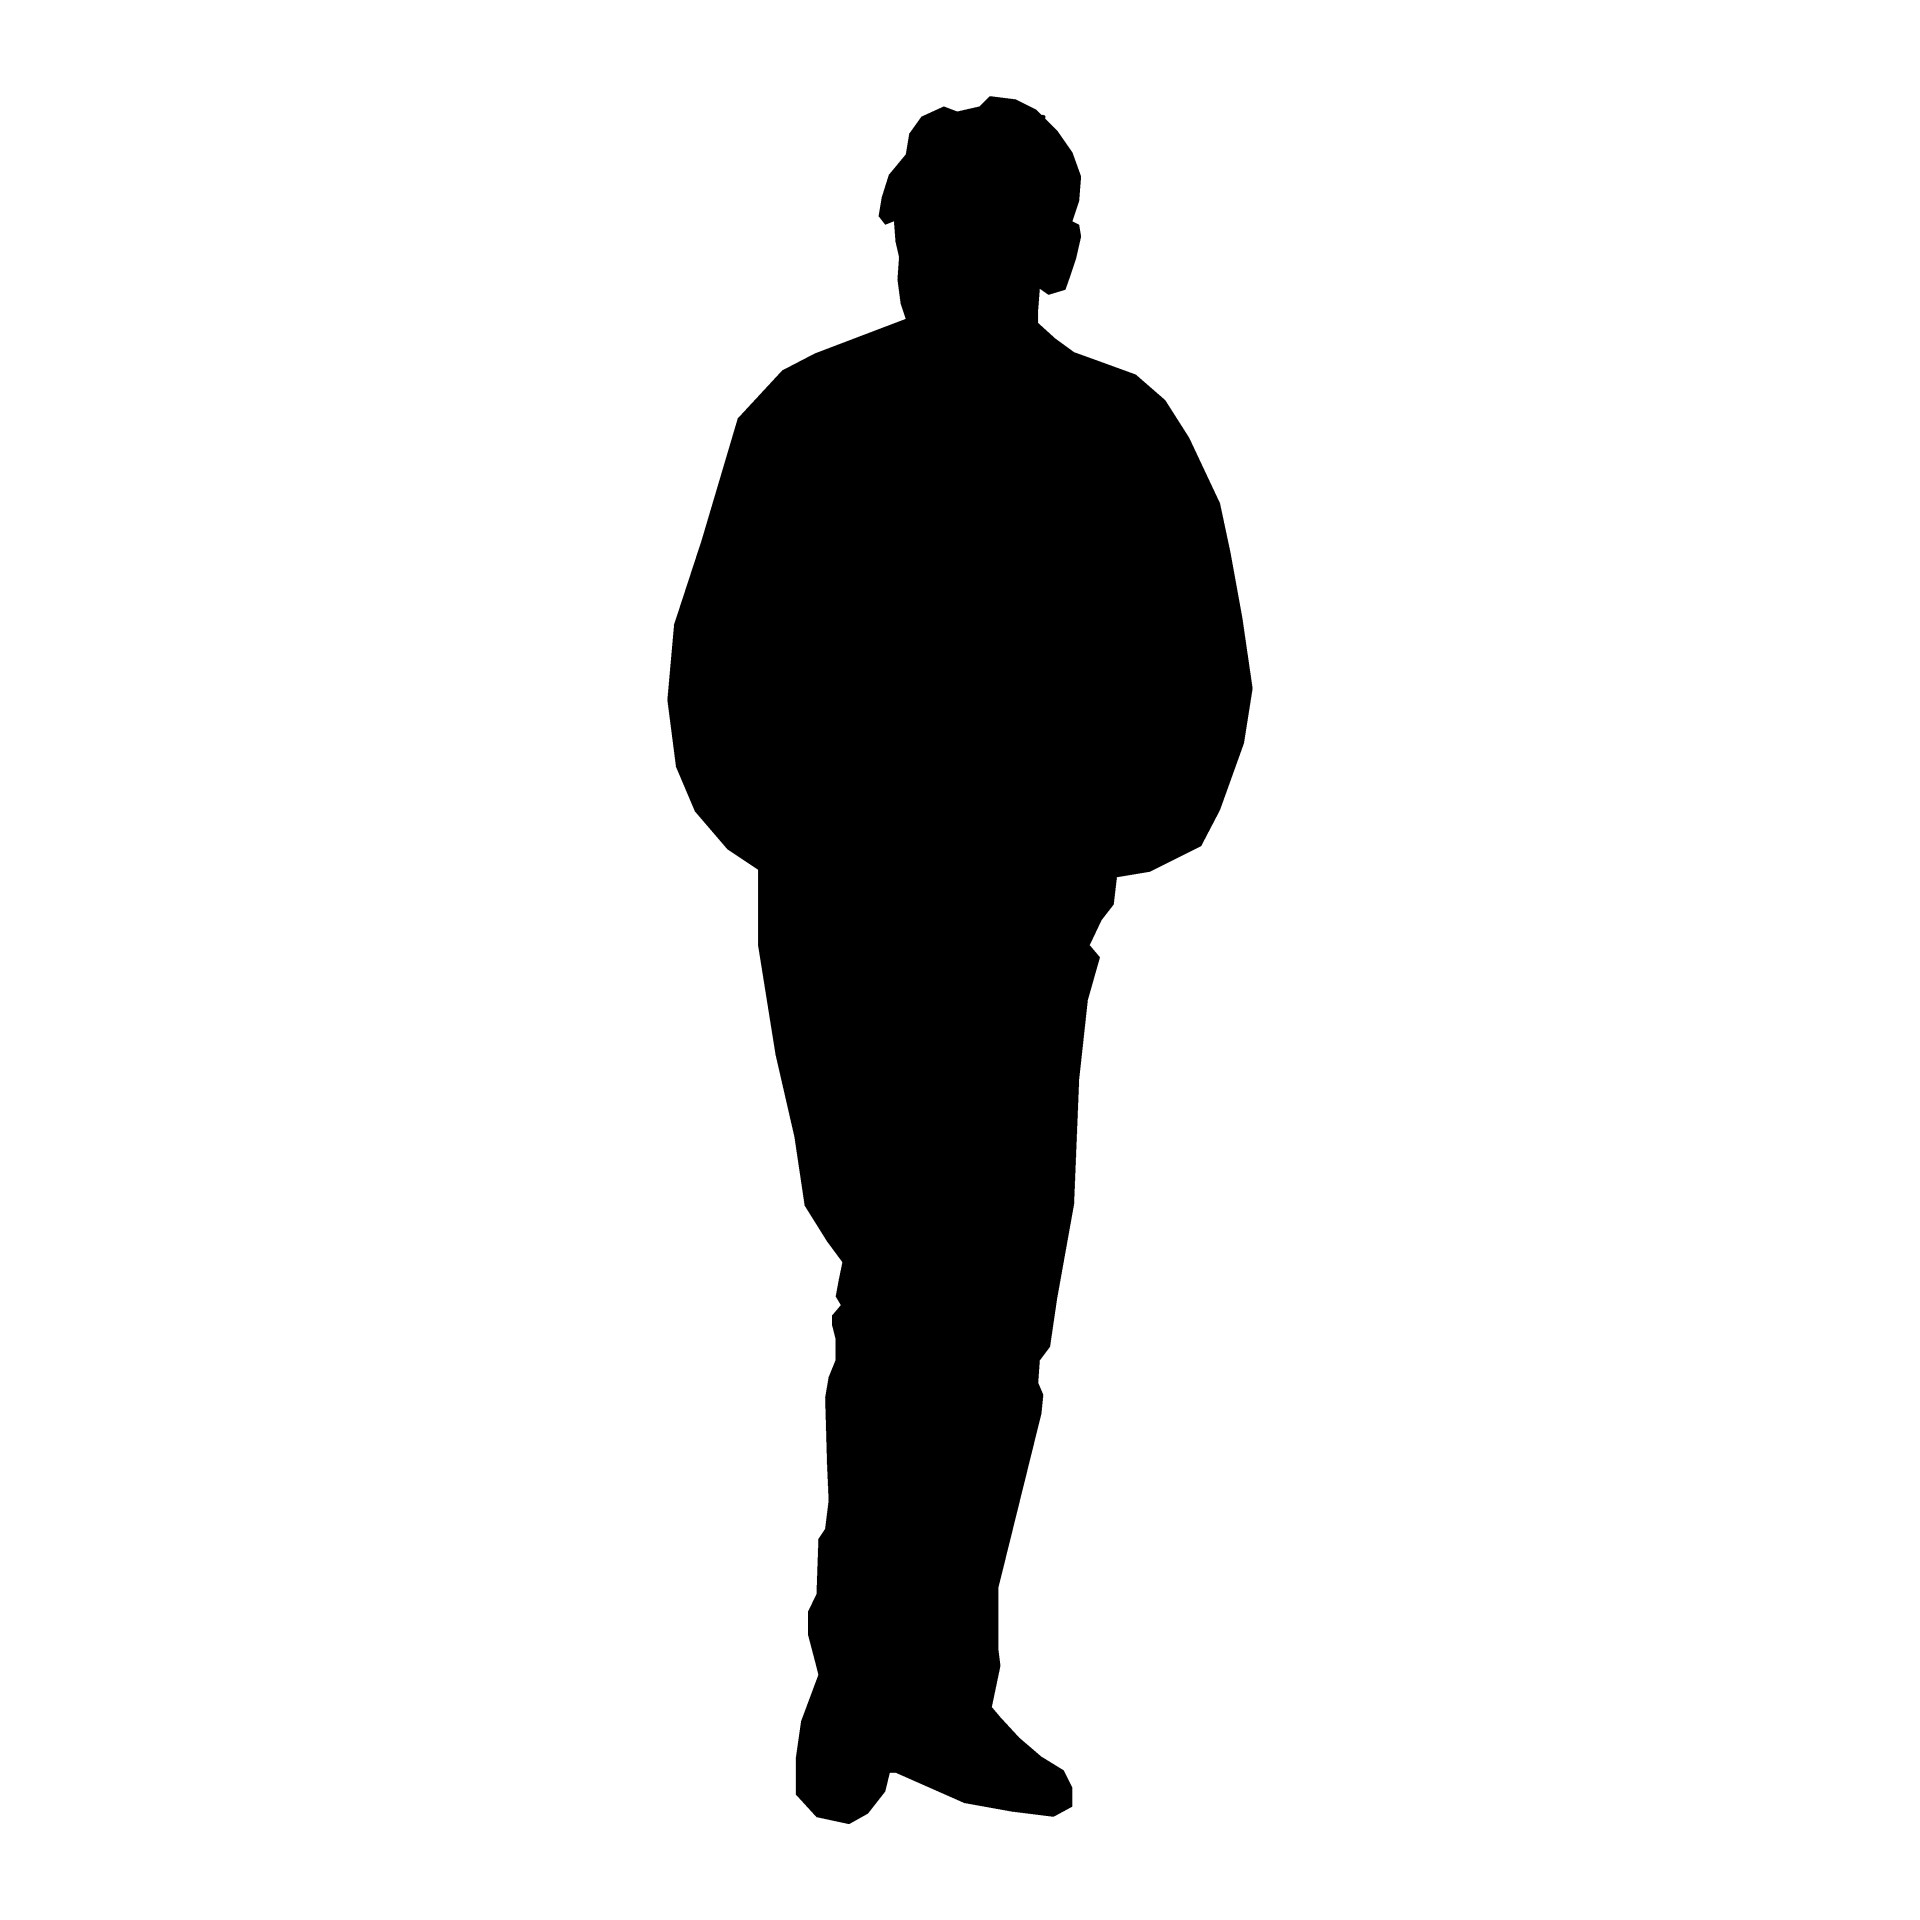 1920x1920 Silhouette Man Standing Free Stock Photo